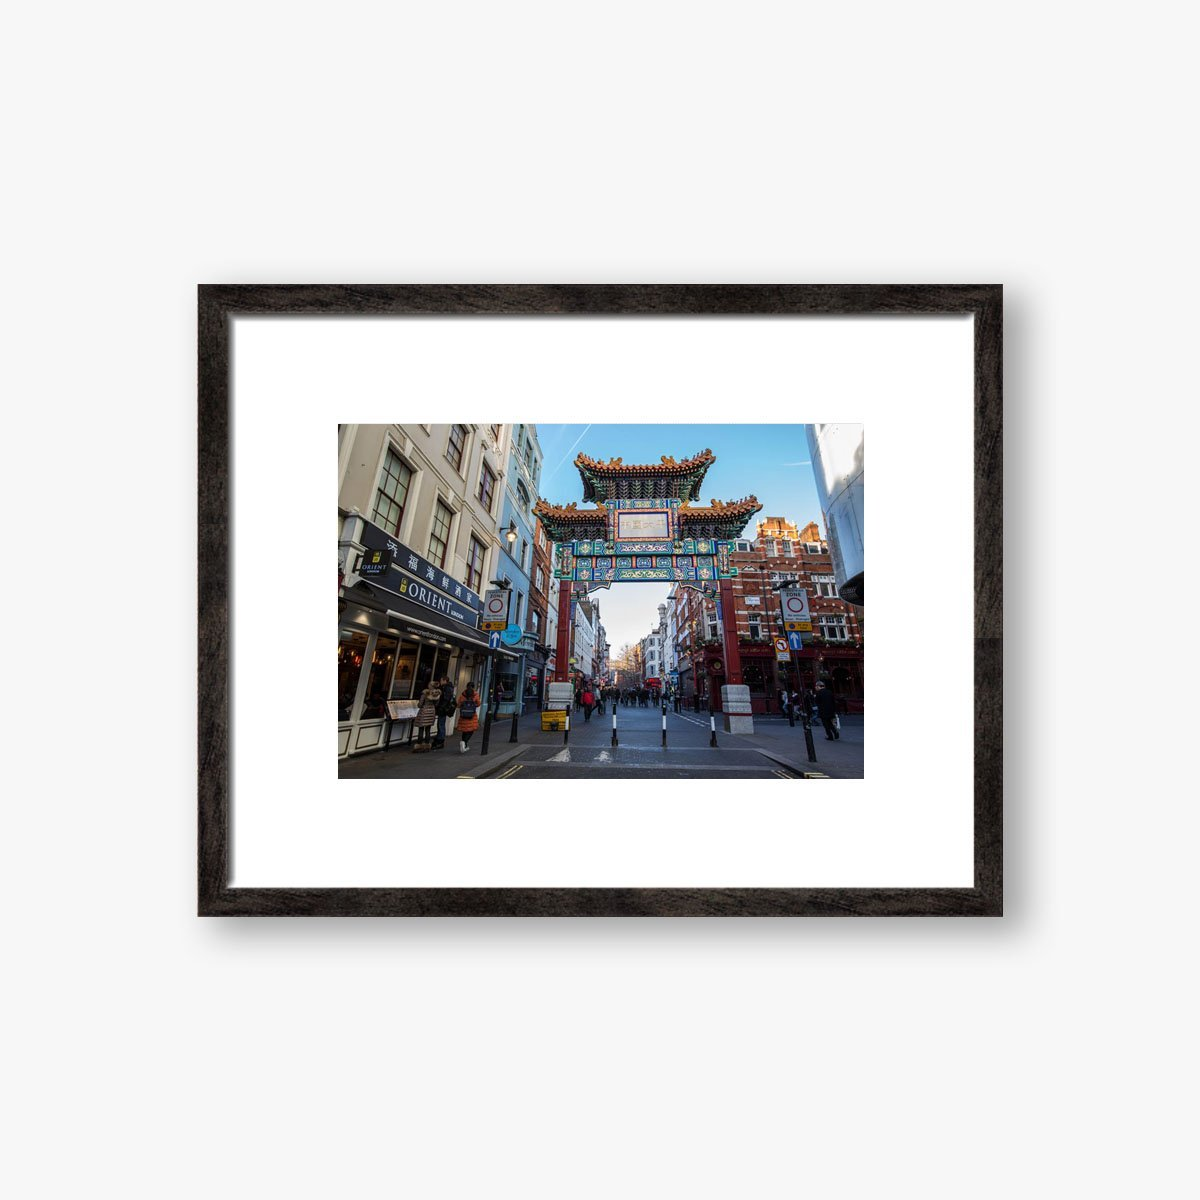 China Town by Alex Lentati